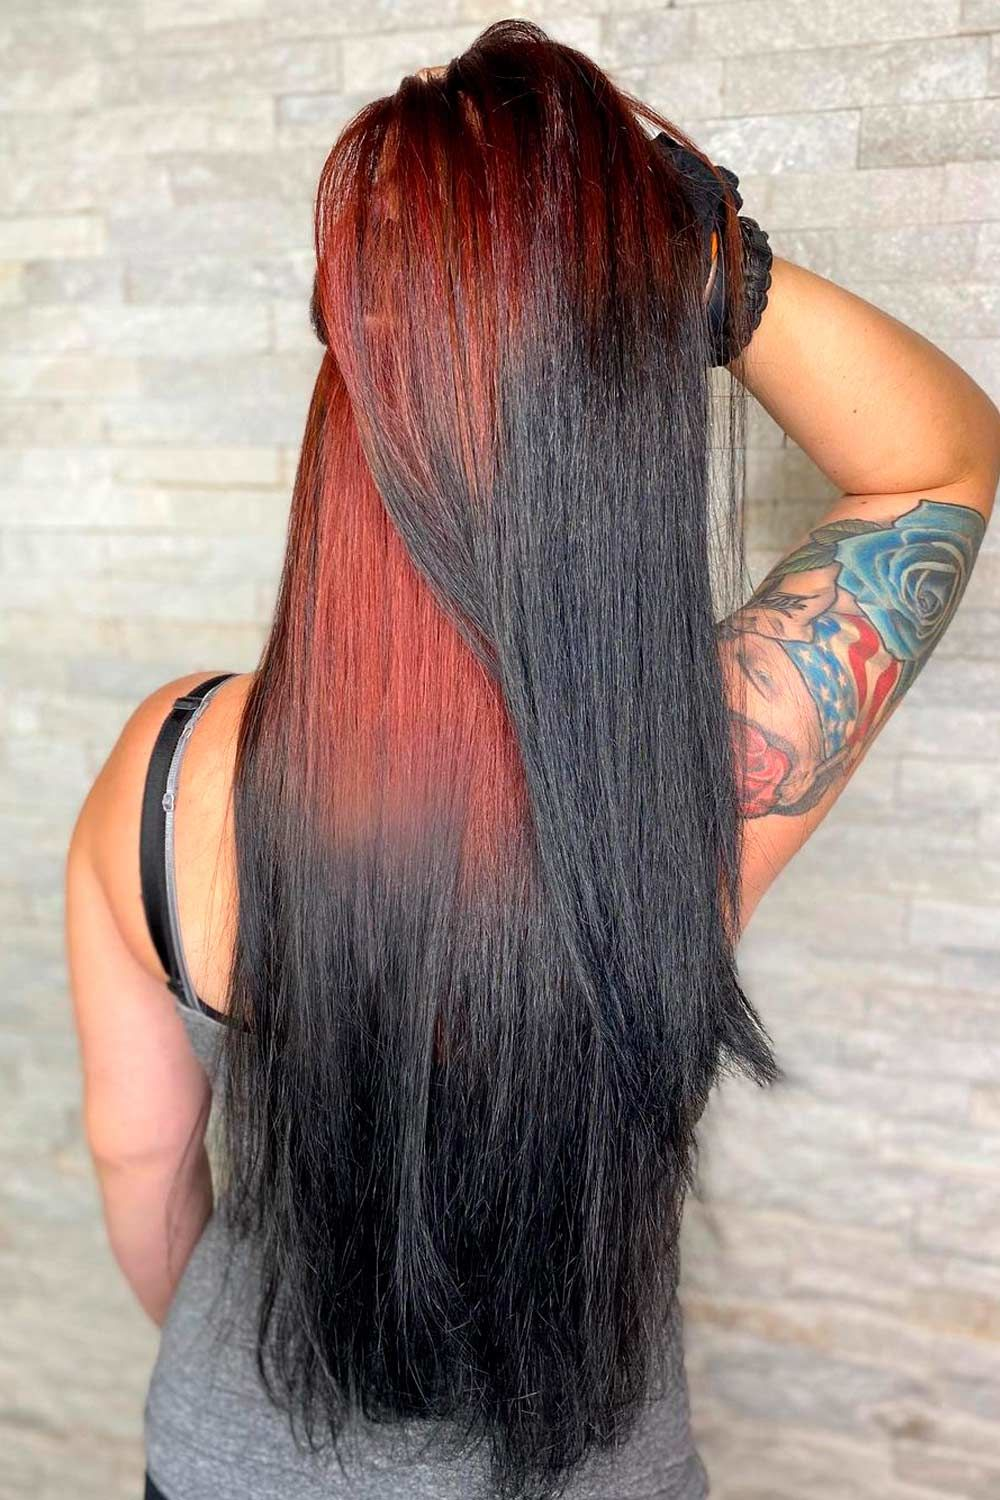 Extra Bright Ideas With Black And Colorful Ombre Reverse Hair, Ombre Hairstyles for Long Hair, Black ombre hair, reverse red ombre hair